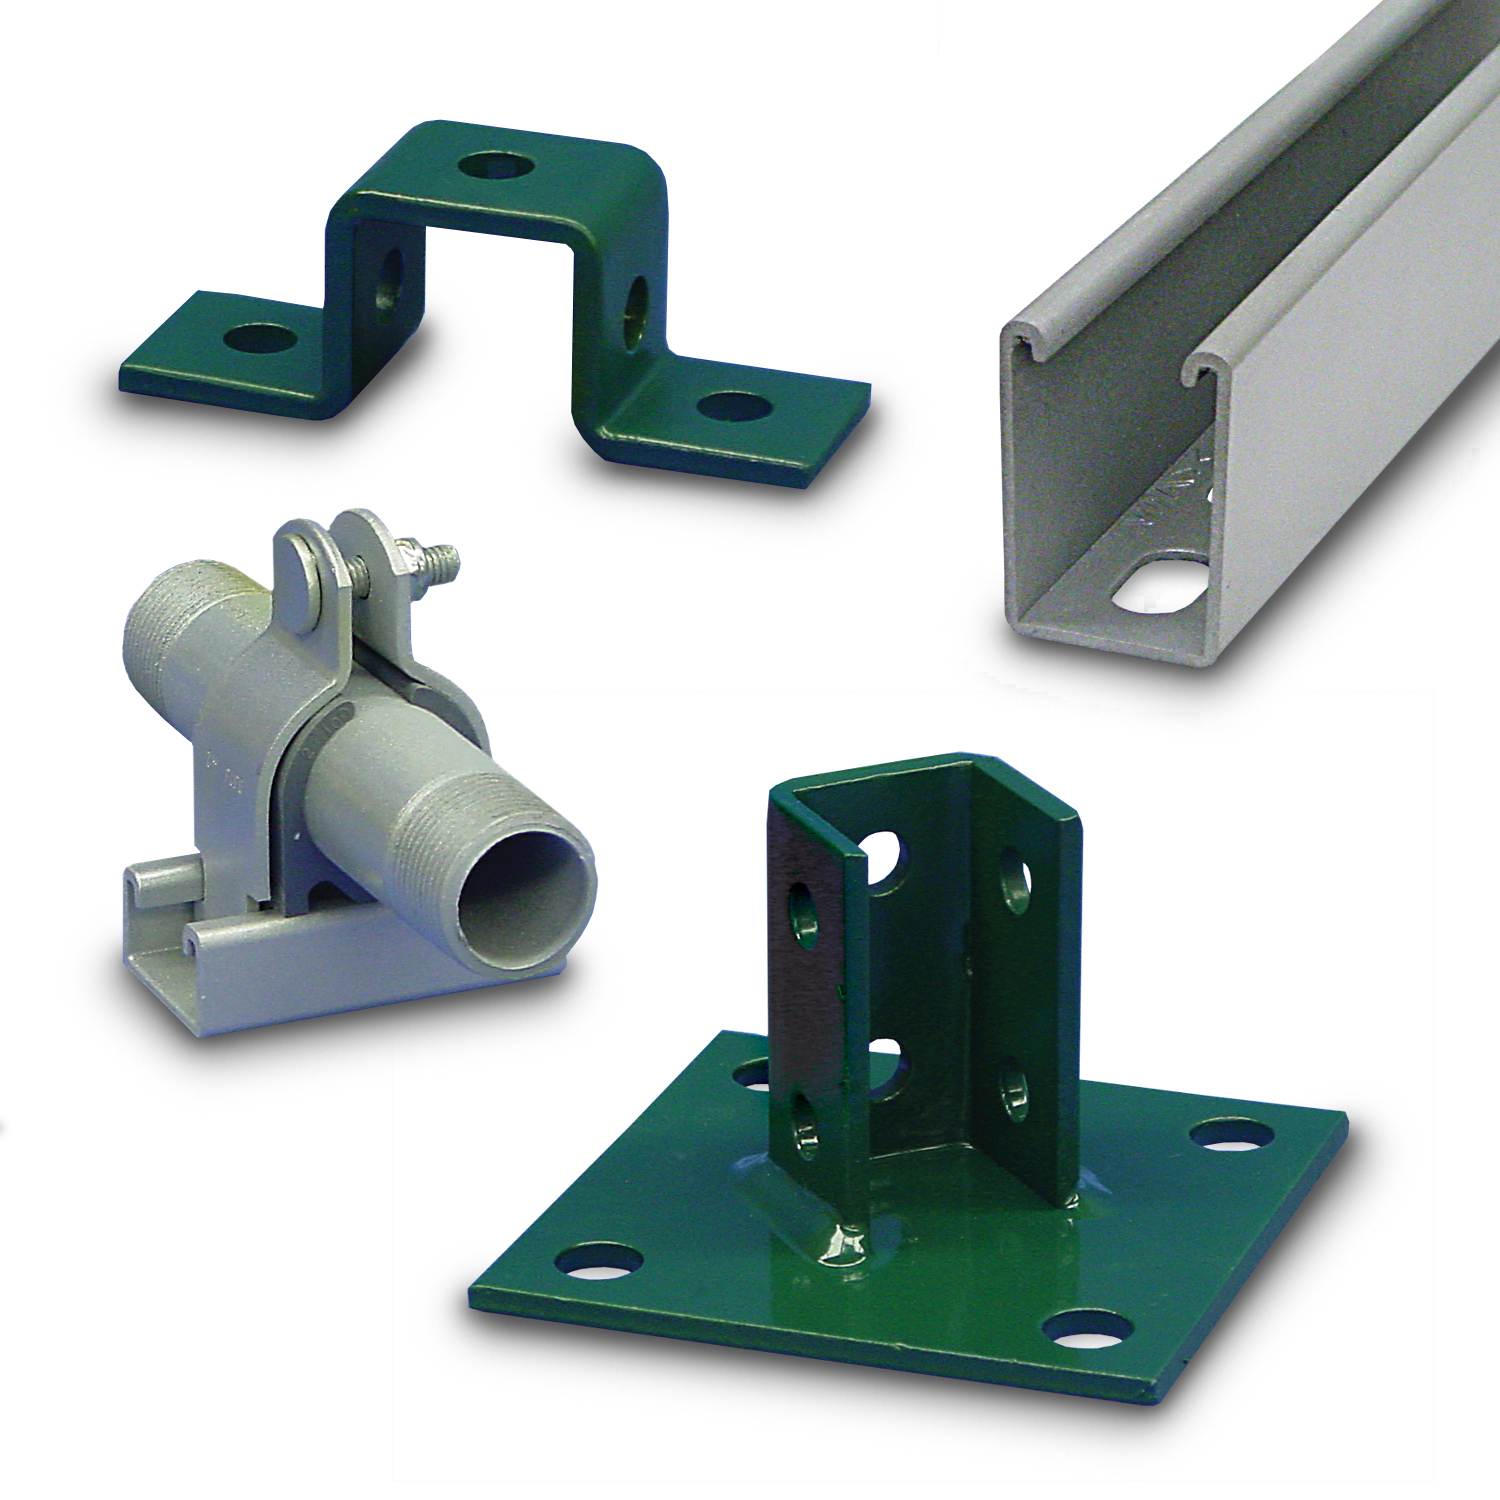 Anvil International: Grooved Fittings, Pipe Hangers, Seismic Bracing